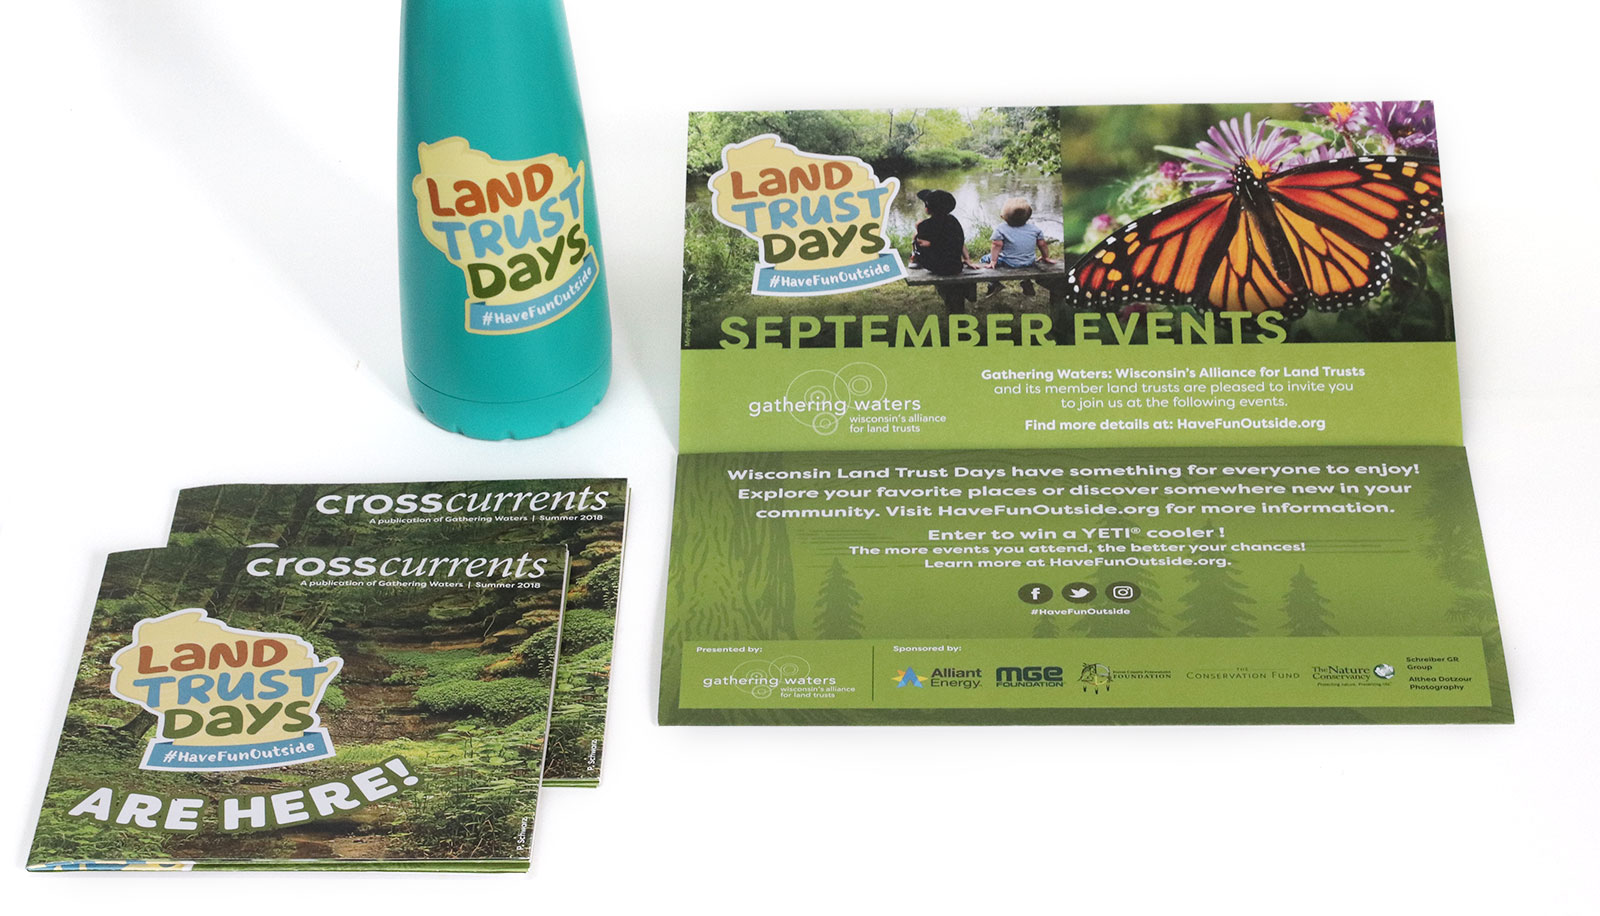 Wisconsin Land Trust Days Event Brand and design